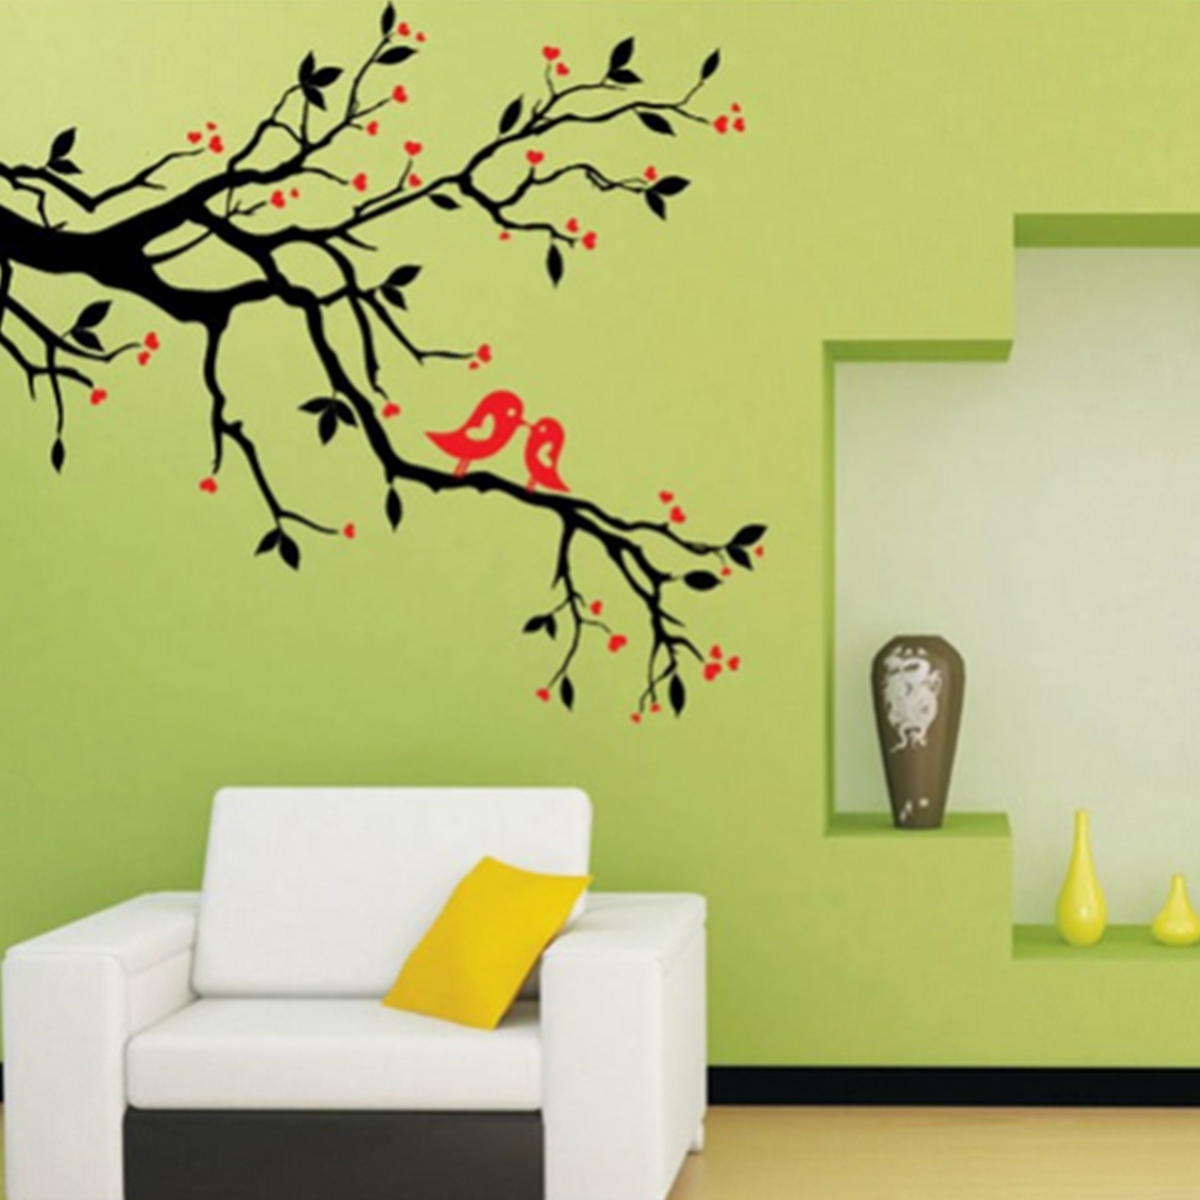 Diy Removable Art Vinyl Quote Wall Stickers Decal Home Mural Decor Kitchen Rules